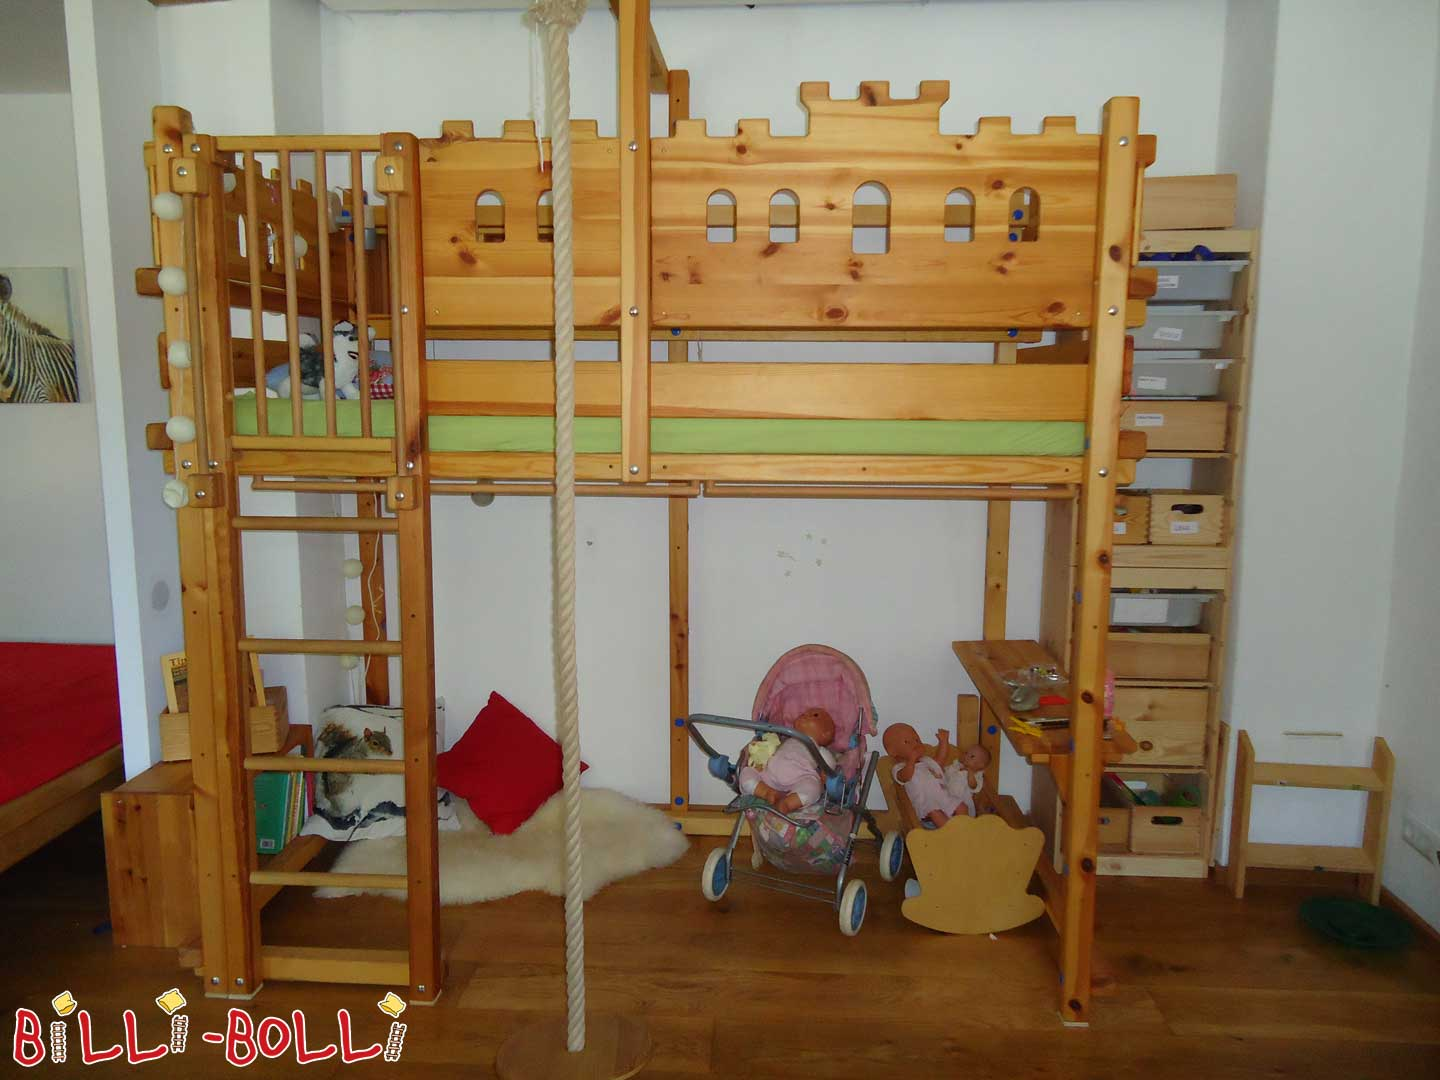 Collating High Bed-with Knight boards for Boys and Girls (second hand loft bed)